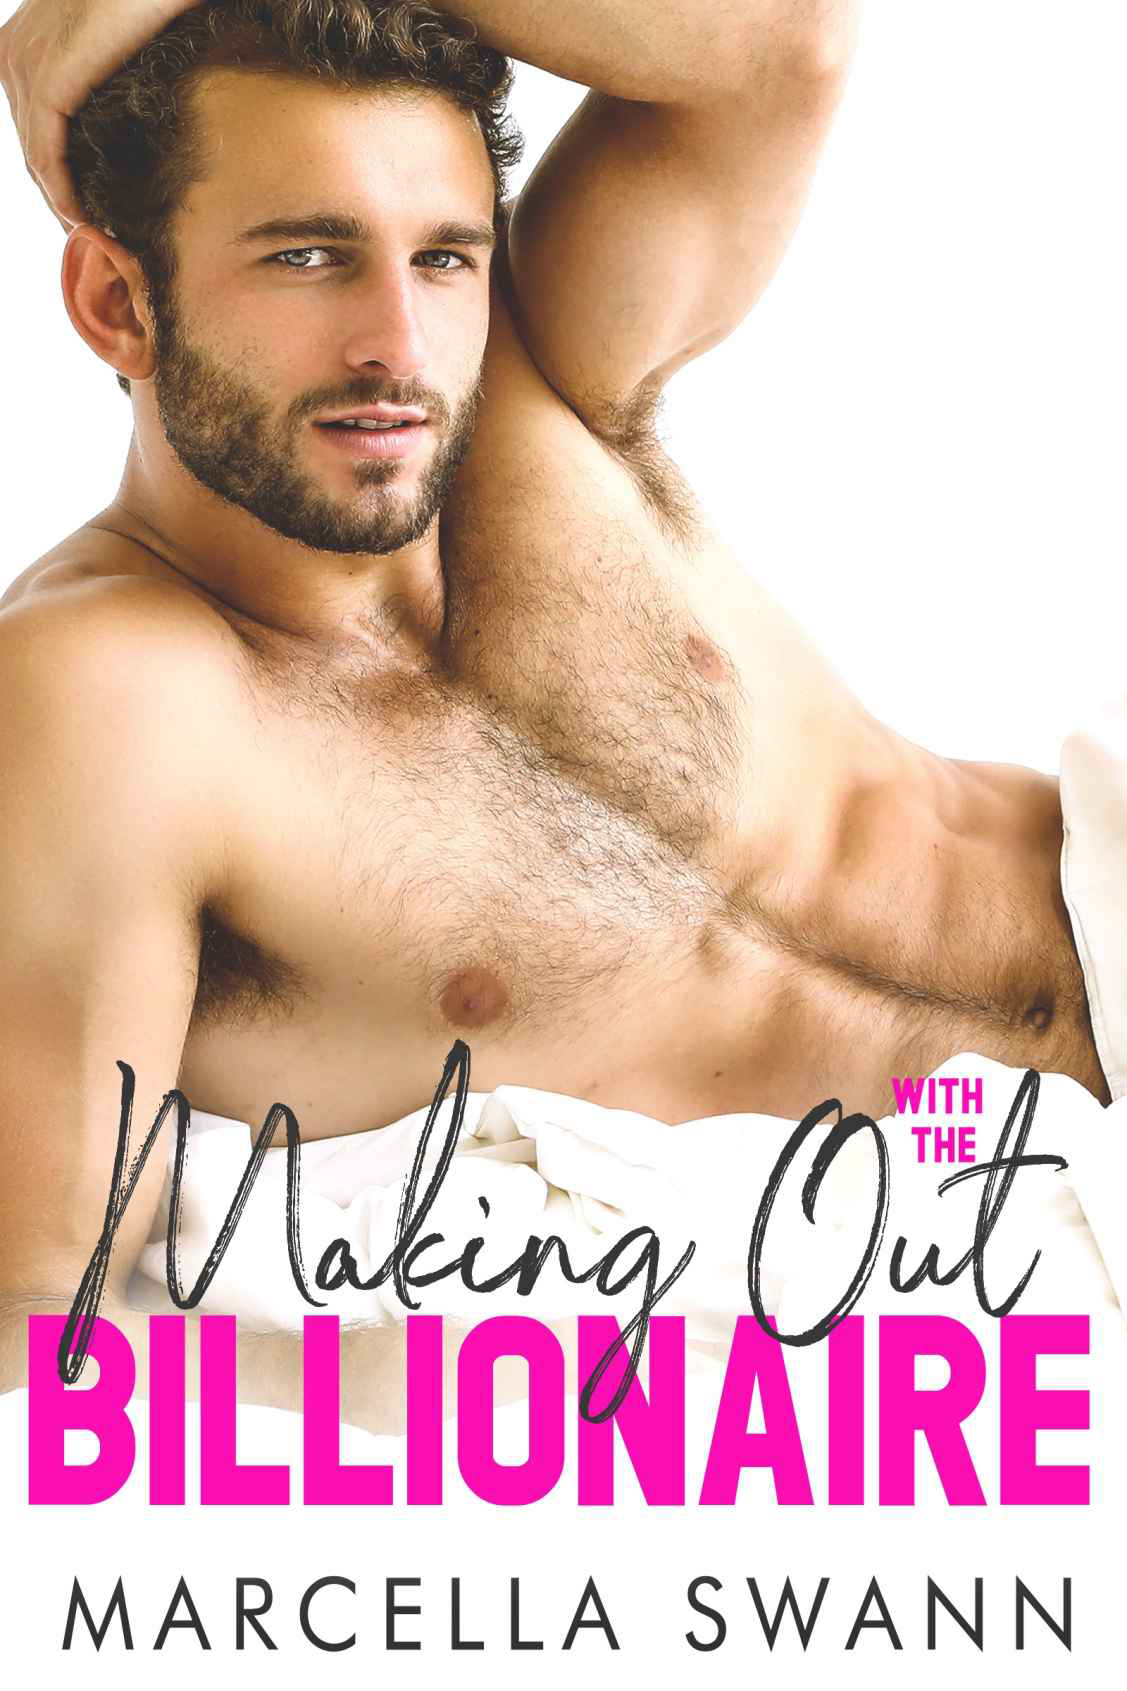 MAKING OUT WITH THE BILLIONAIRE